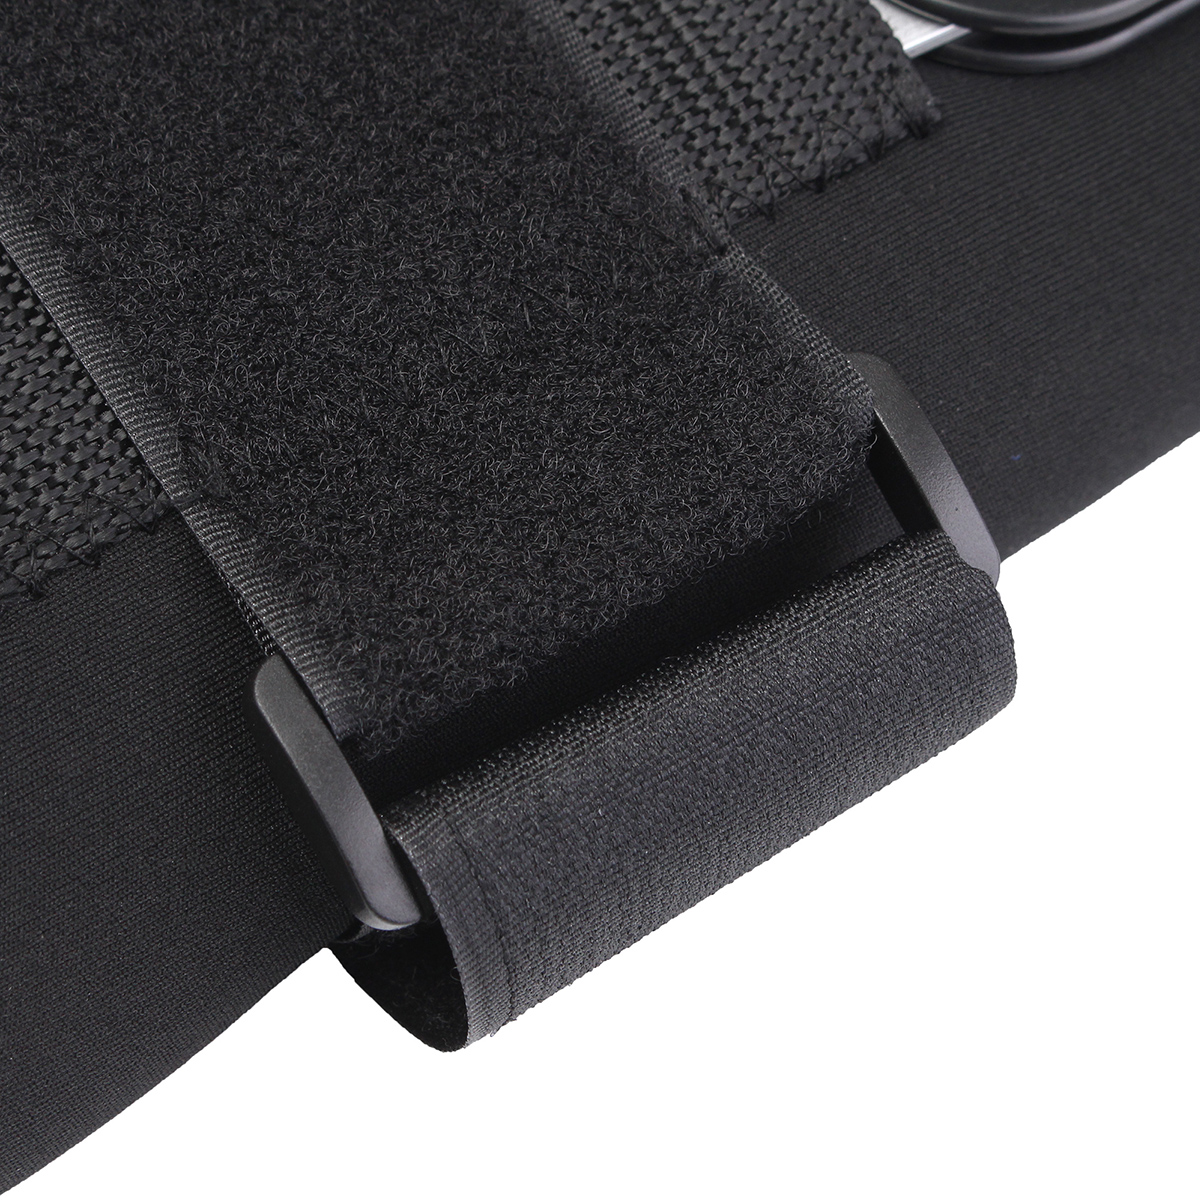 Sports Adjustable Knee Pad Thigh Knee Support Brace Strap Wrap Bandage Pain Injury Relief